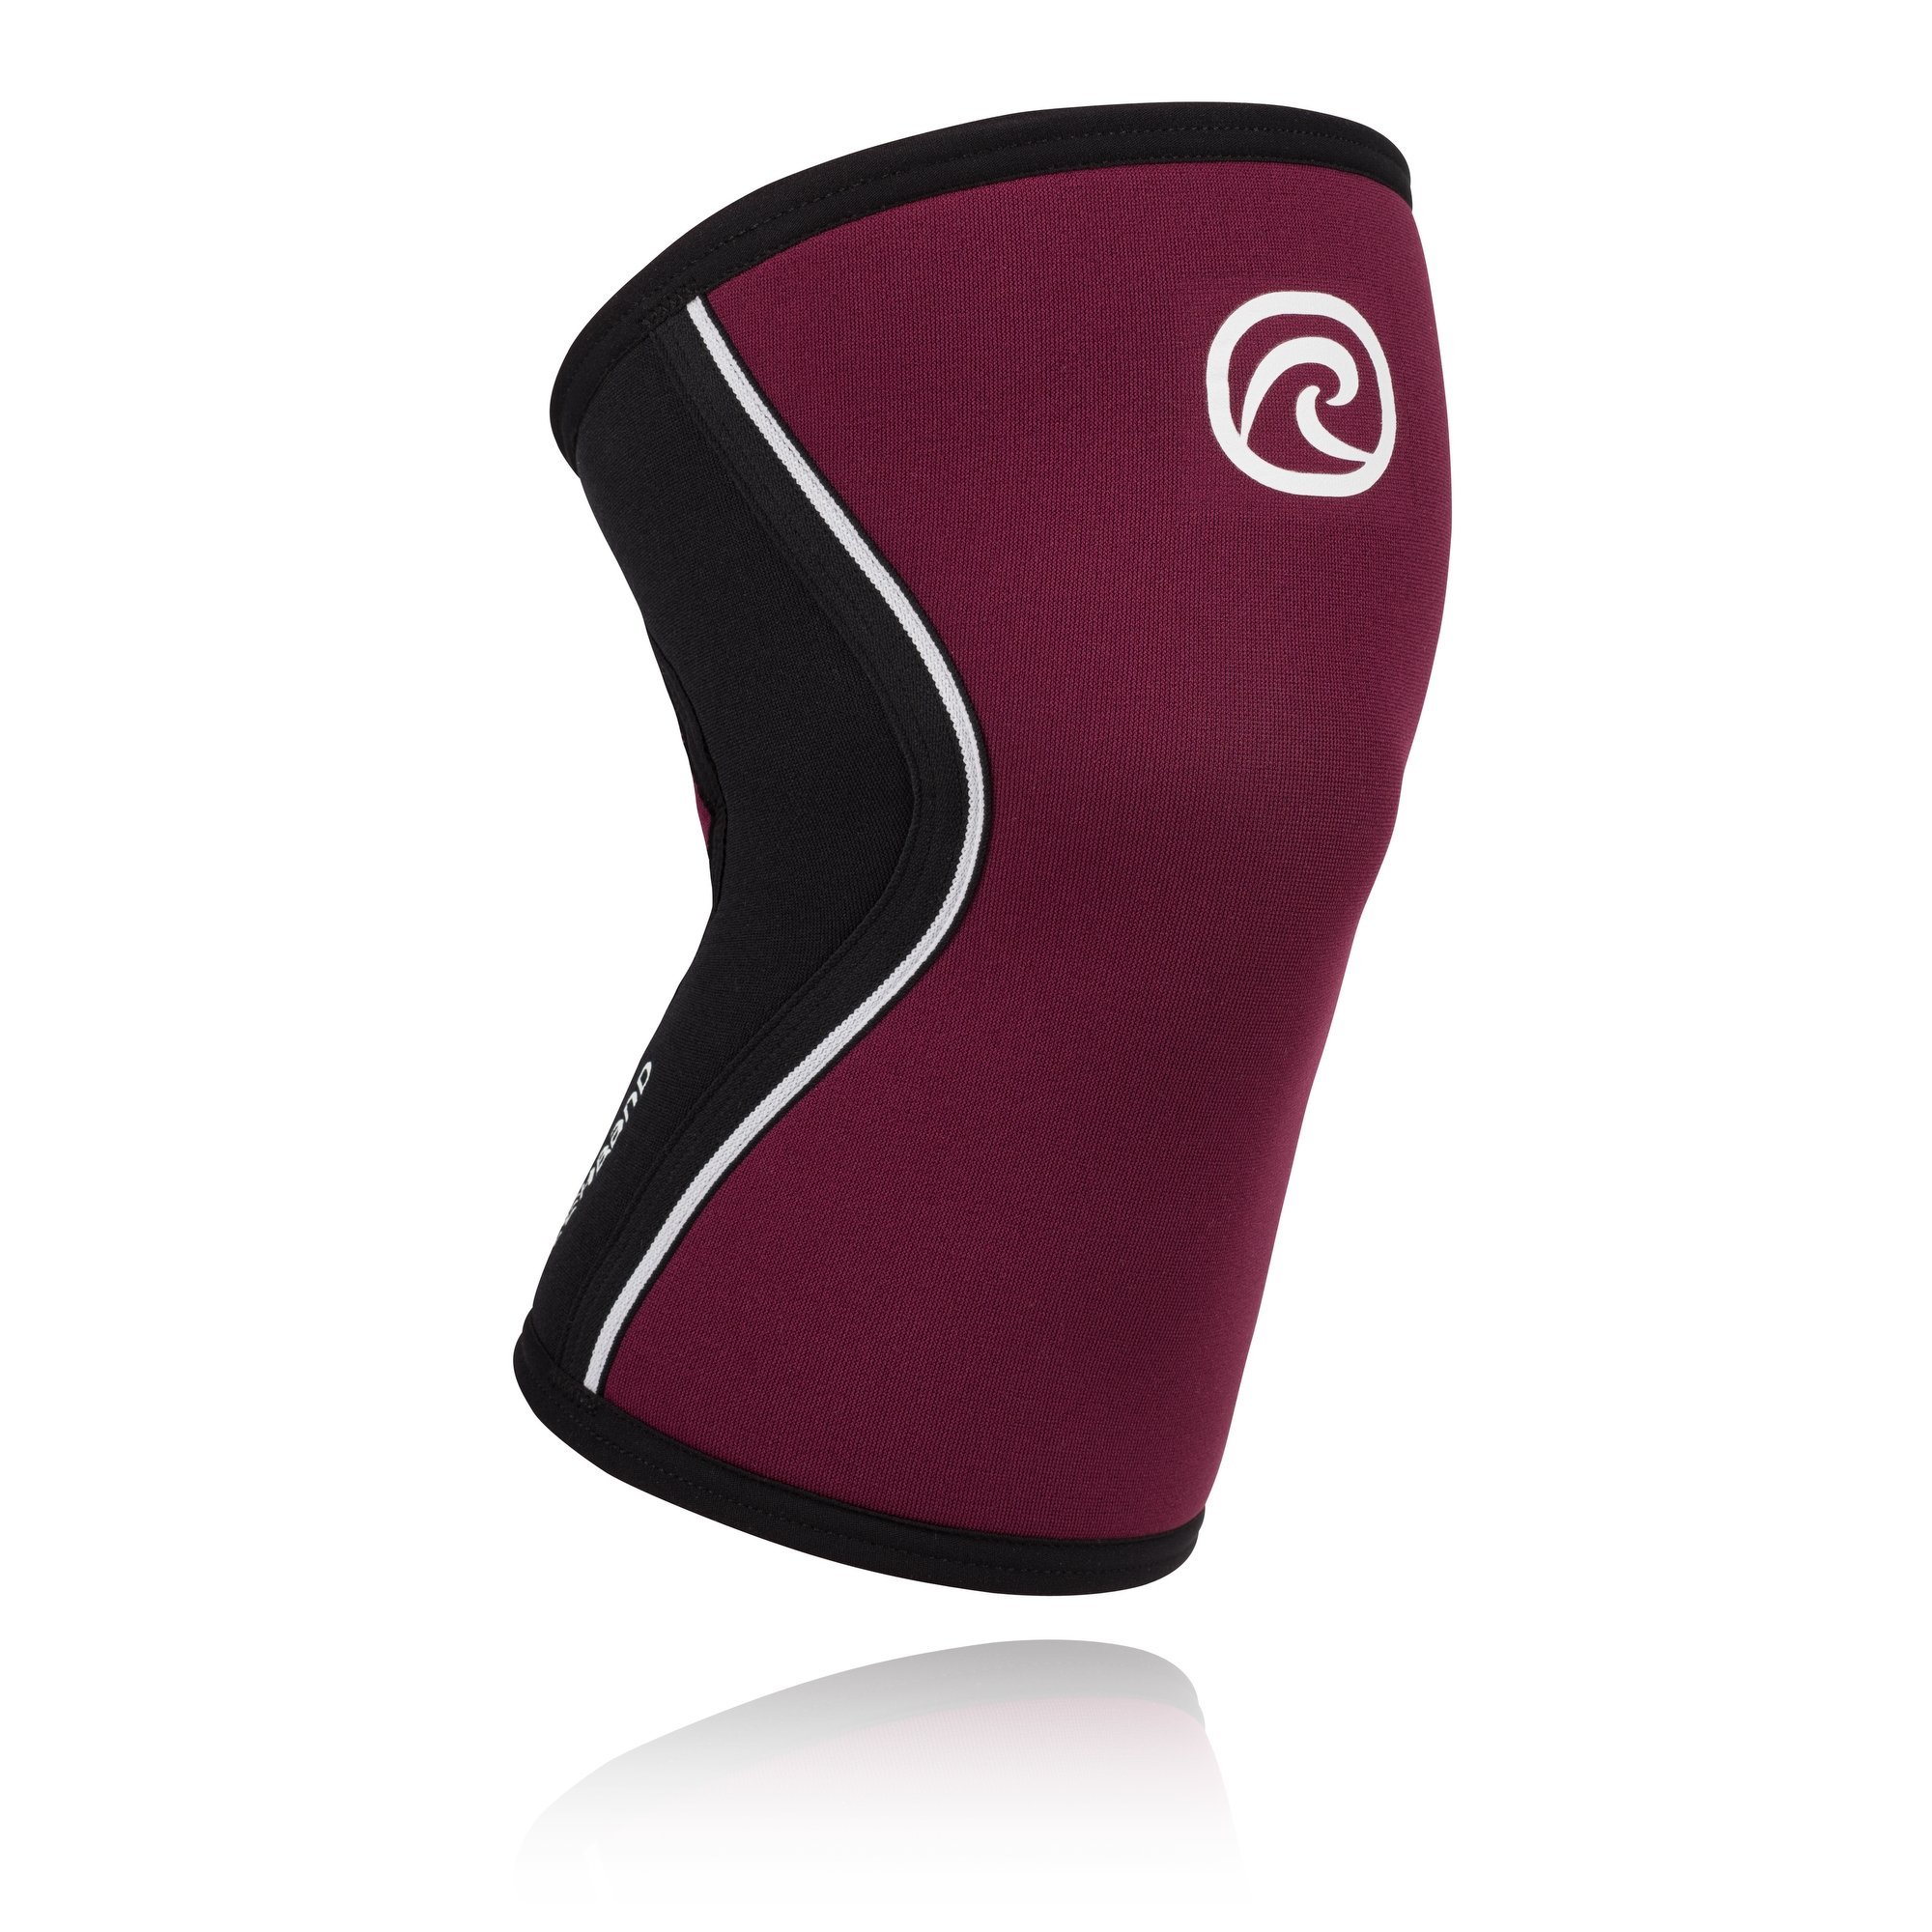 Rehband Rx Knee Support 5mm - X-Small - Burgundy - Expand Your Movement + Cross Training Potential - Knee Sleeve for Fitness - Feel Stronger + More Secure - Relieve Strain - 1 Sleeve